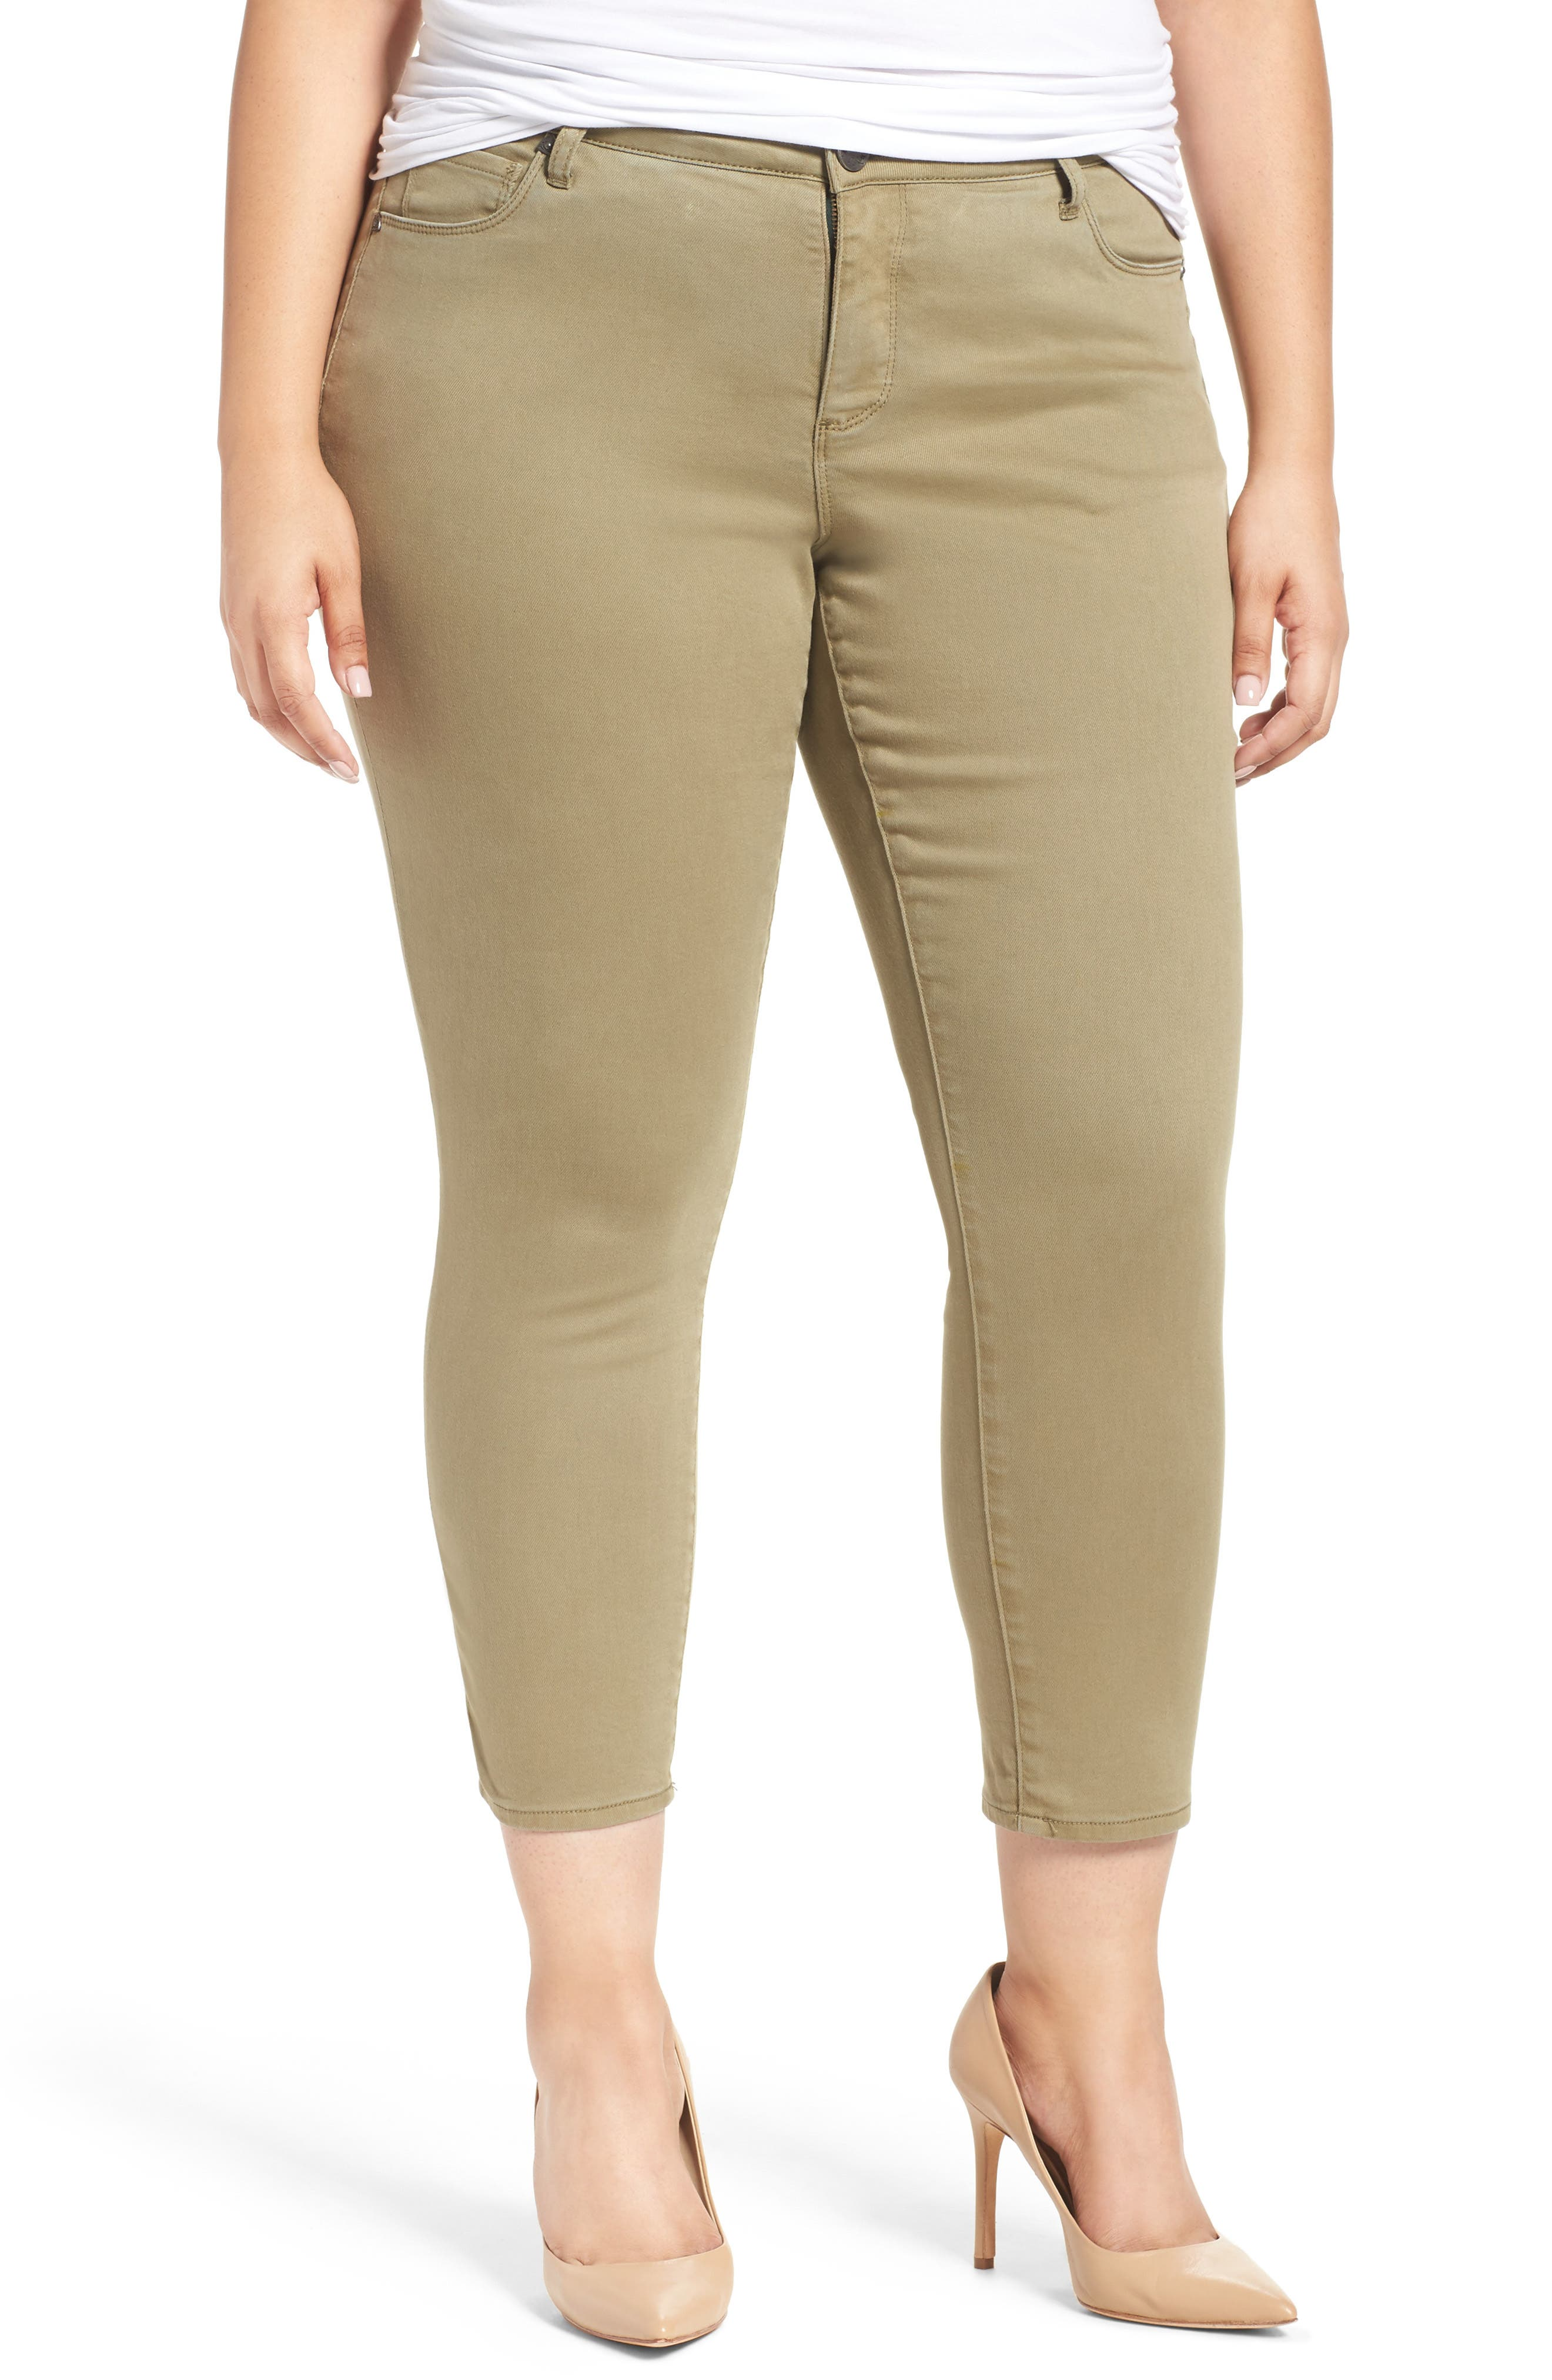 Reese Stretch Ankle Skinny Pants,                         Main,                         color, OLIVE